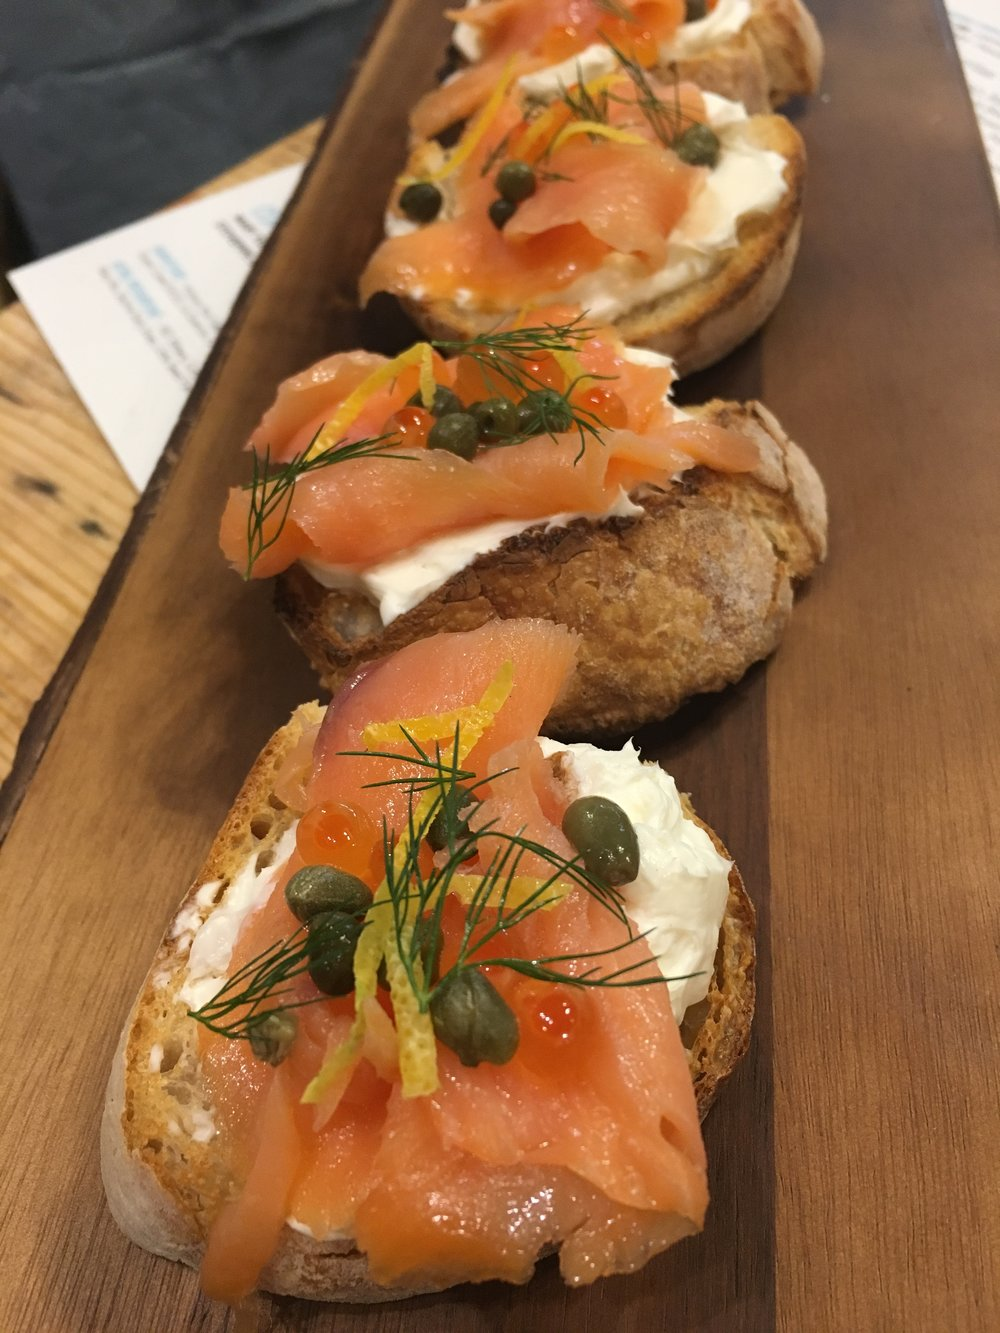 Take it to the Bridge  - ACME smoked salmon, house toast, dill, red onion, capers, and Ikura (salmon caviar)